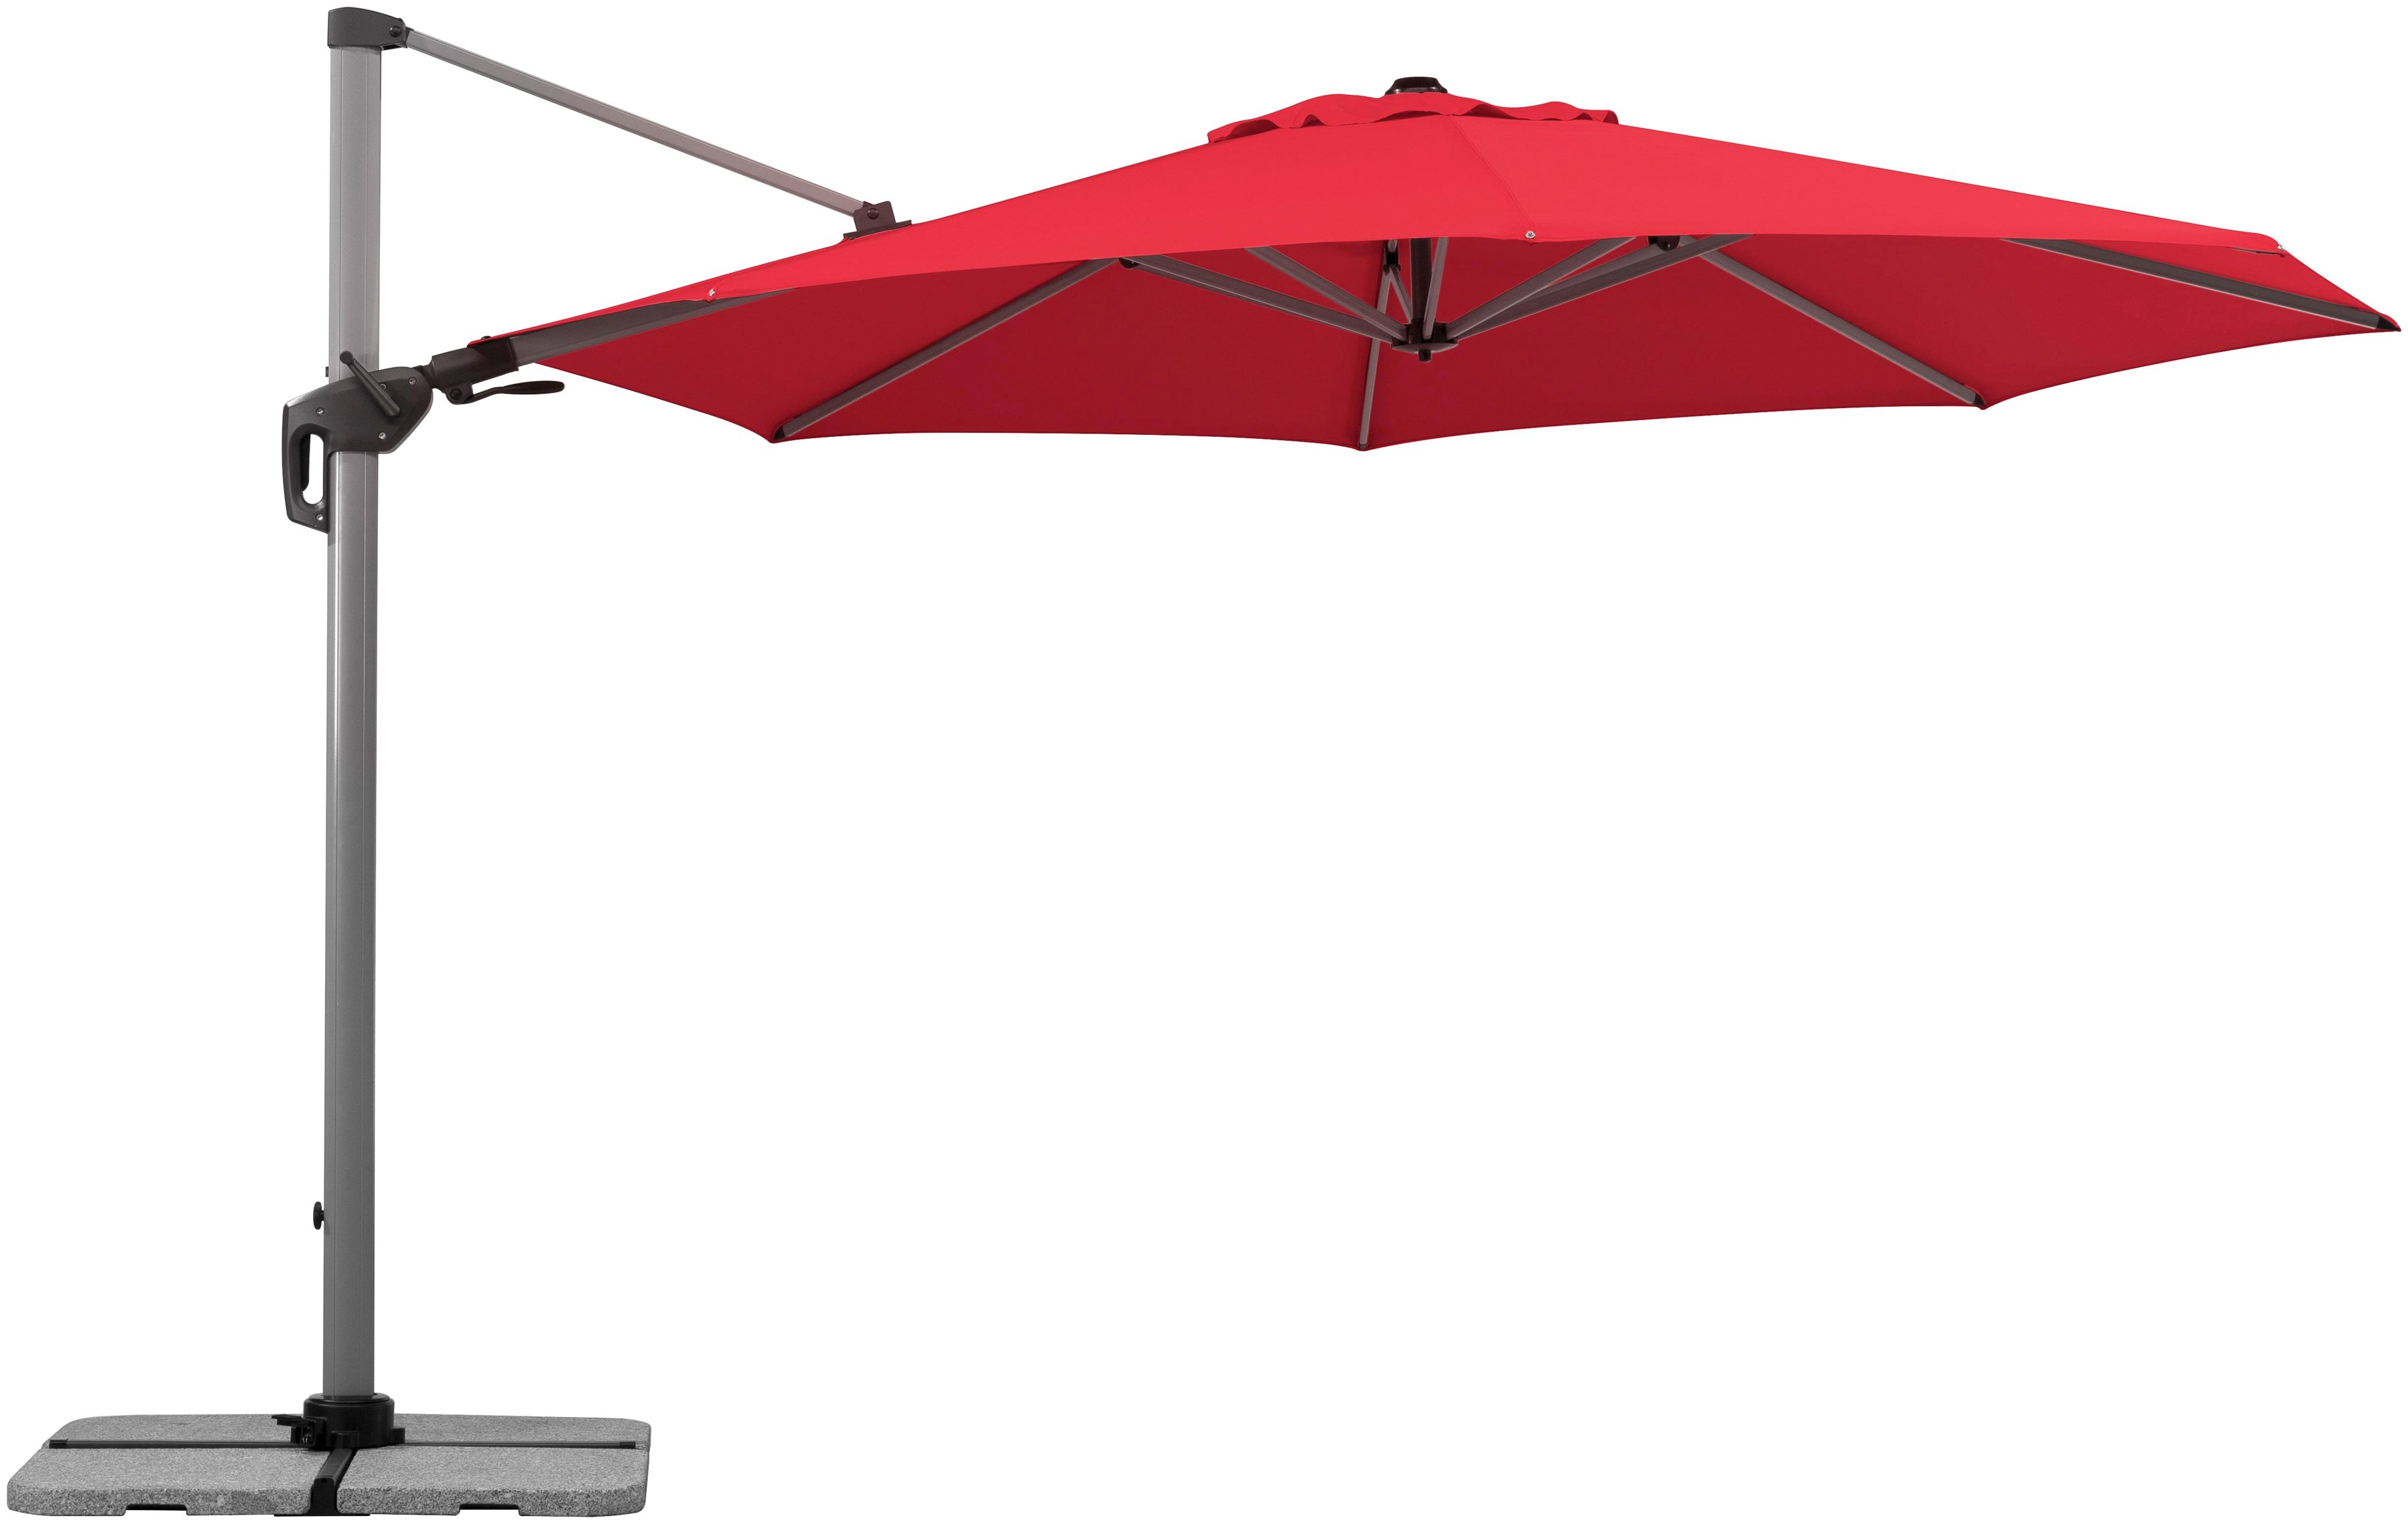 schneider parasols parasol bermuda 350 cm snel online gekocht otto. Black Bedroom Furniture Sets. Home Design Ideas